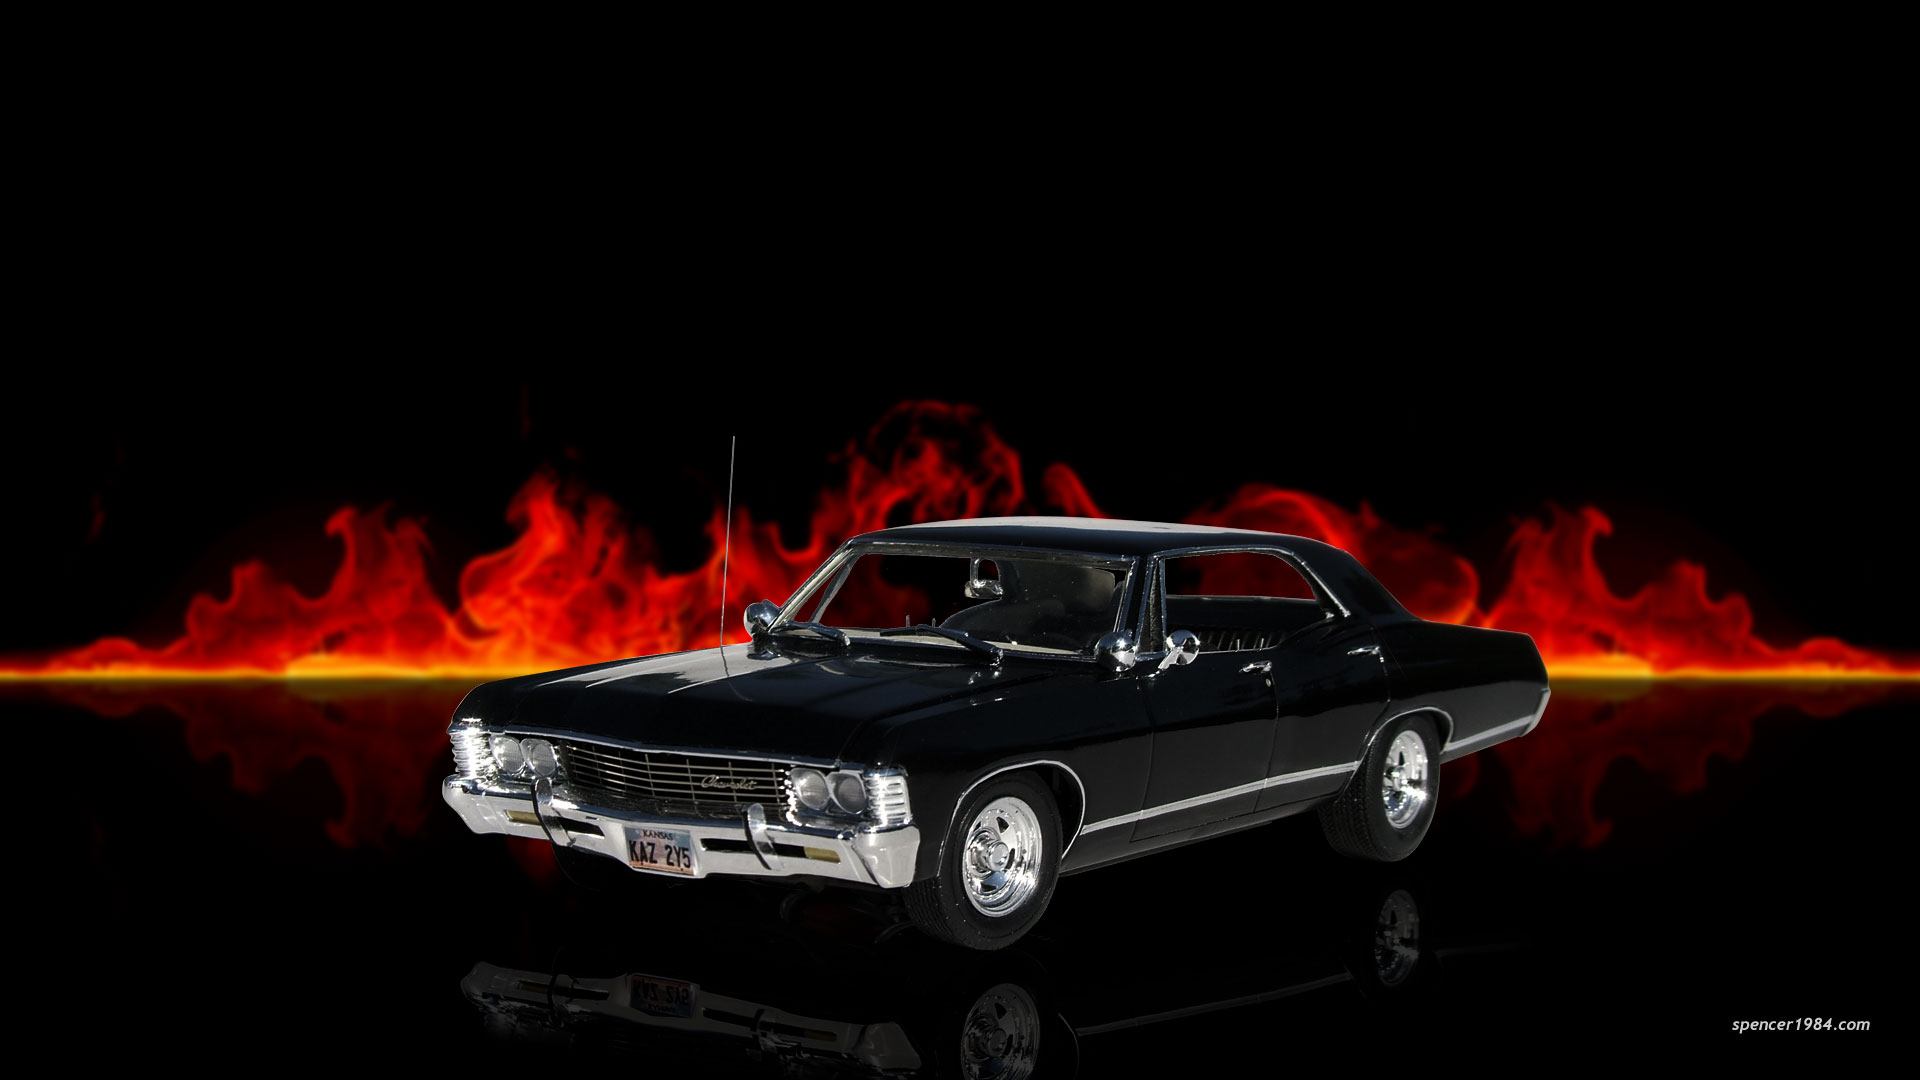 supernatural car impala wallpaper - photo #2